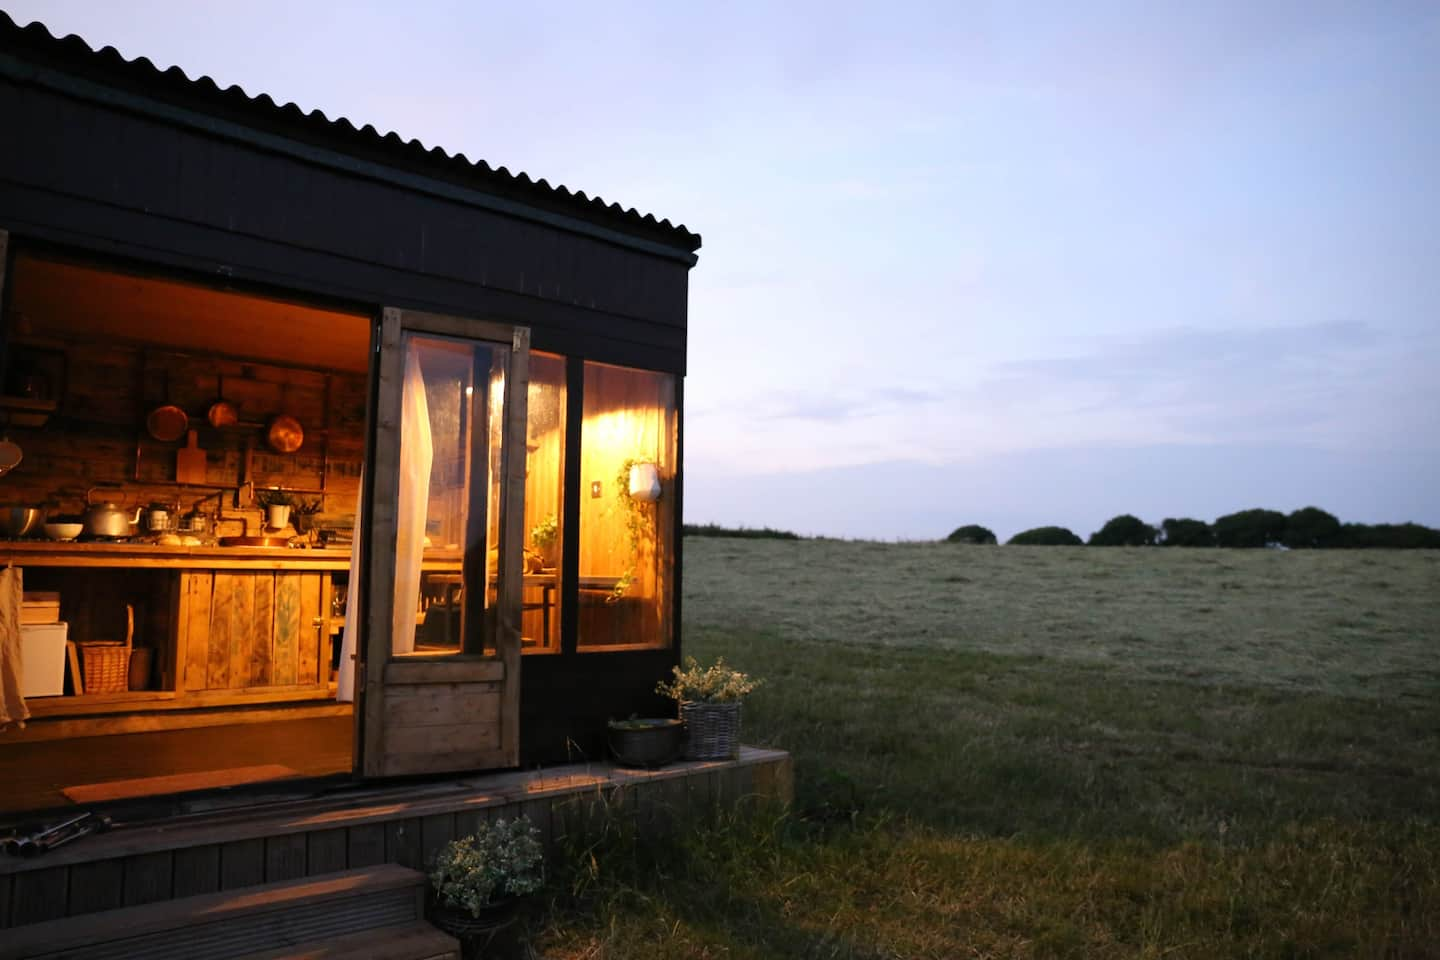 Best Airbnbs in Devon - Sweetside Shepherds Hit Airbnb